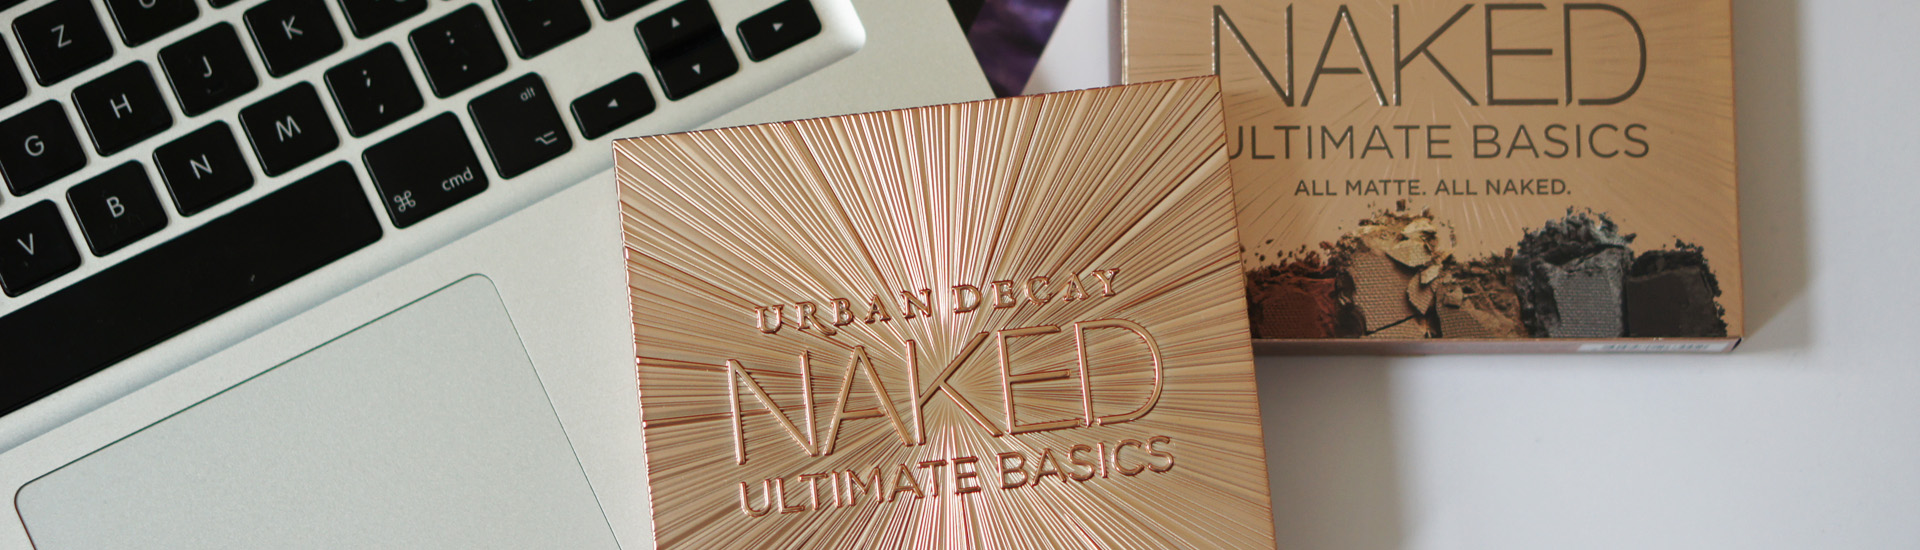 Тени Ubran Decay Naked Ultimate Basics